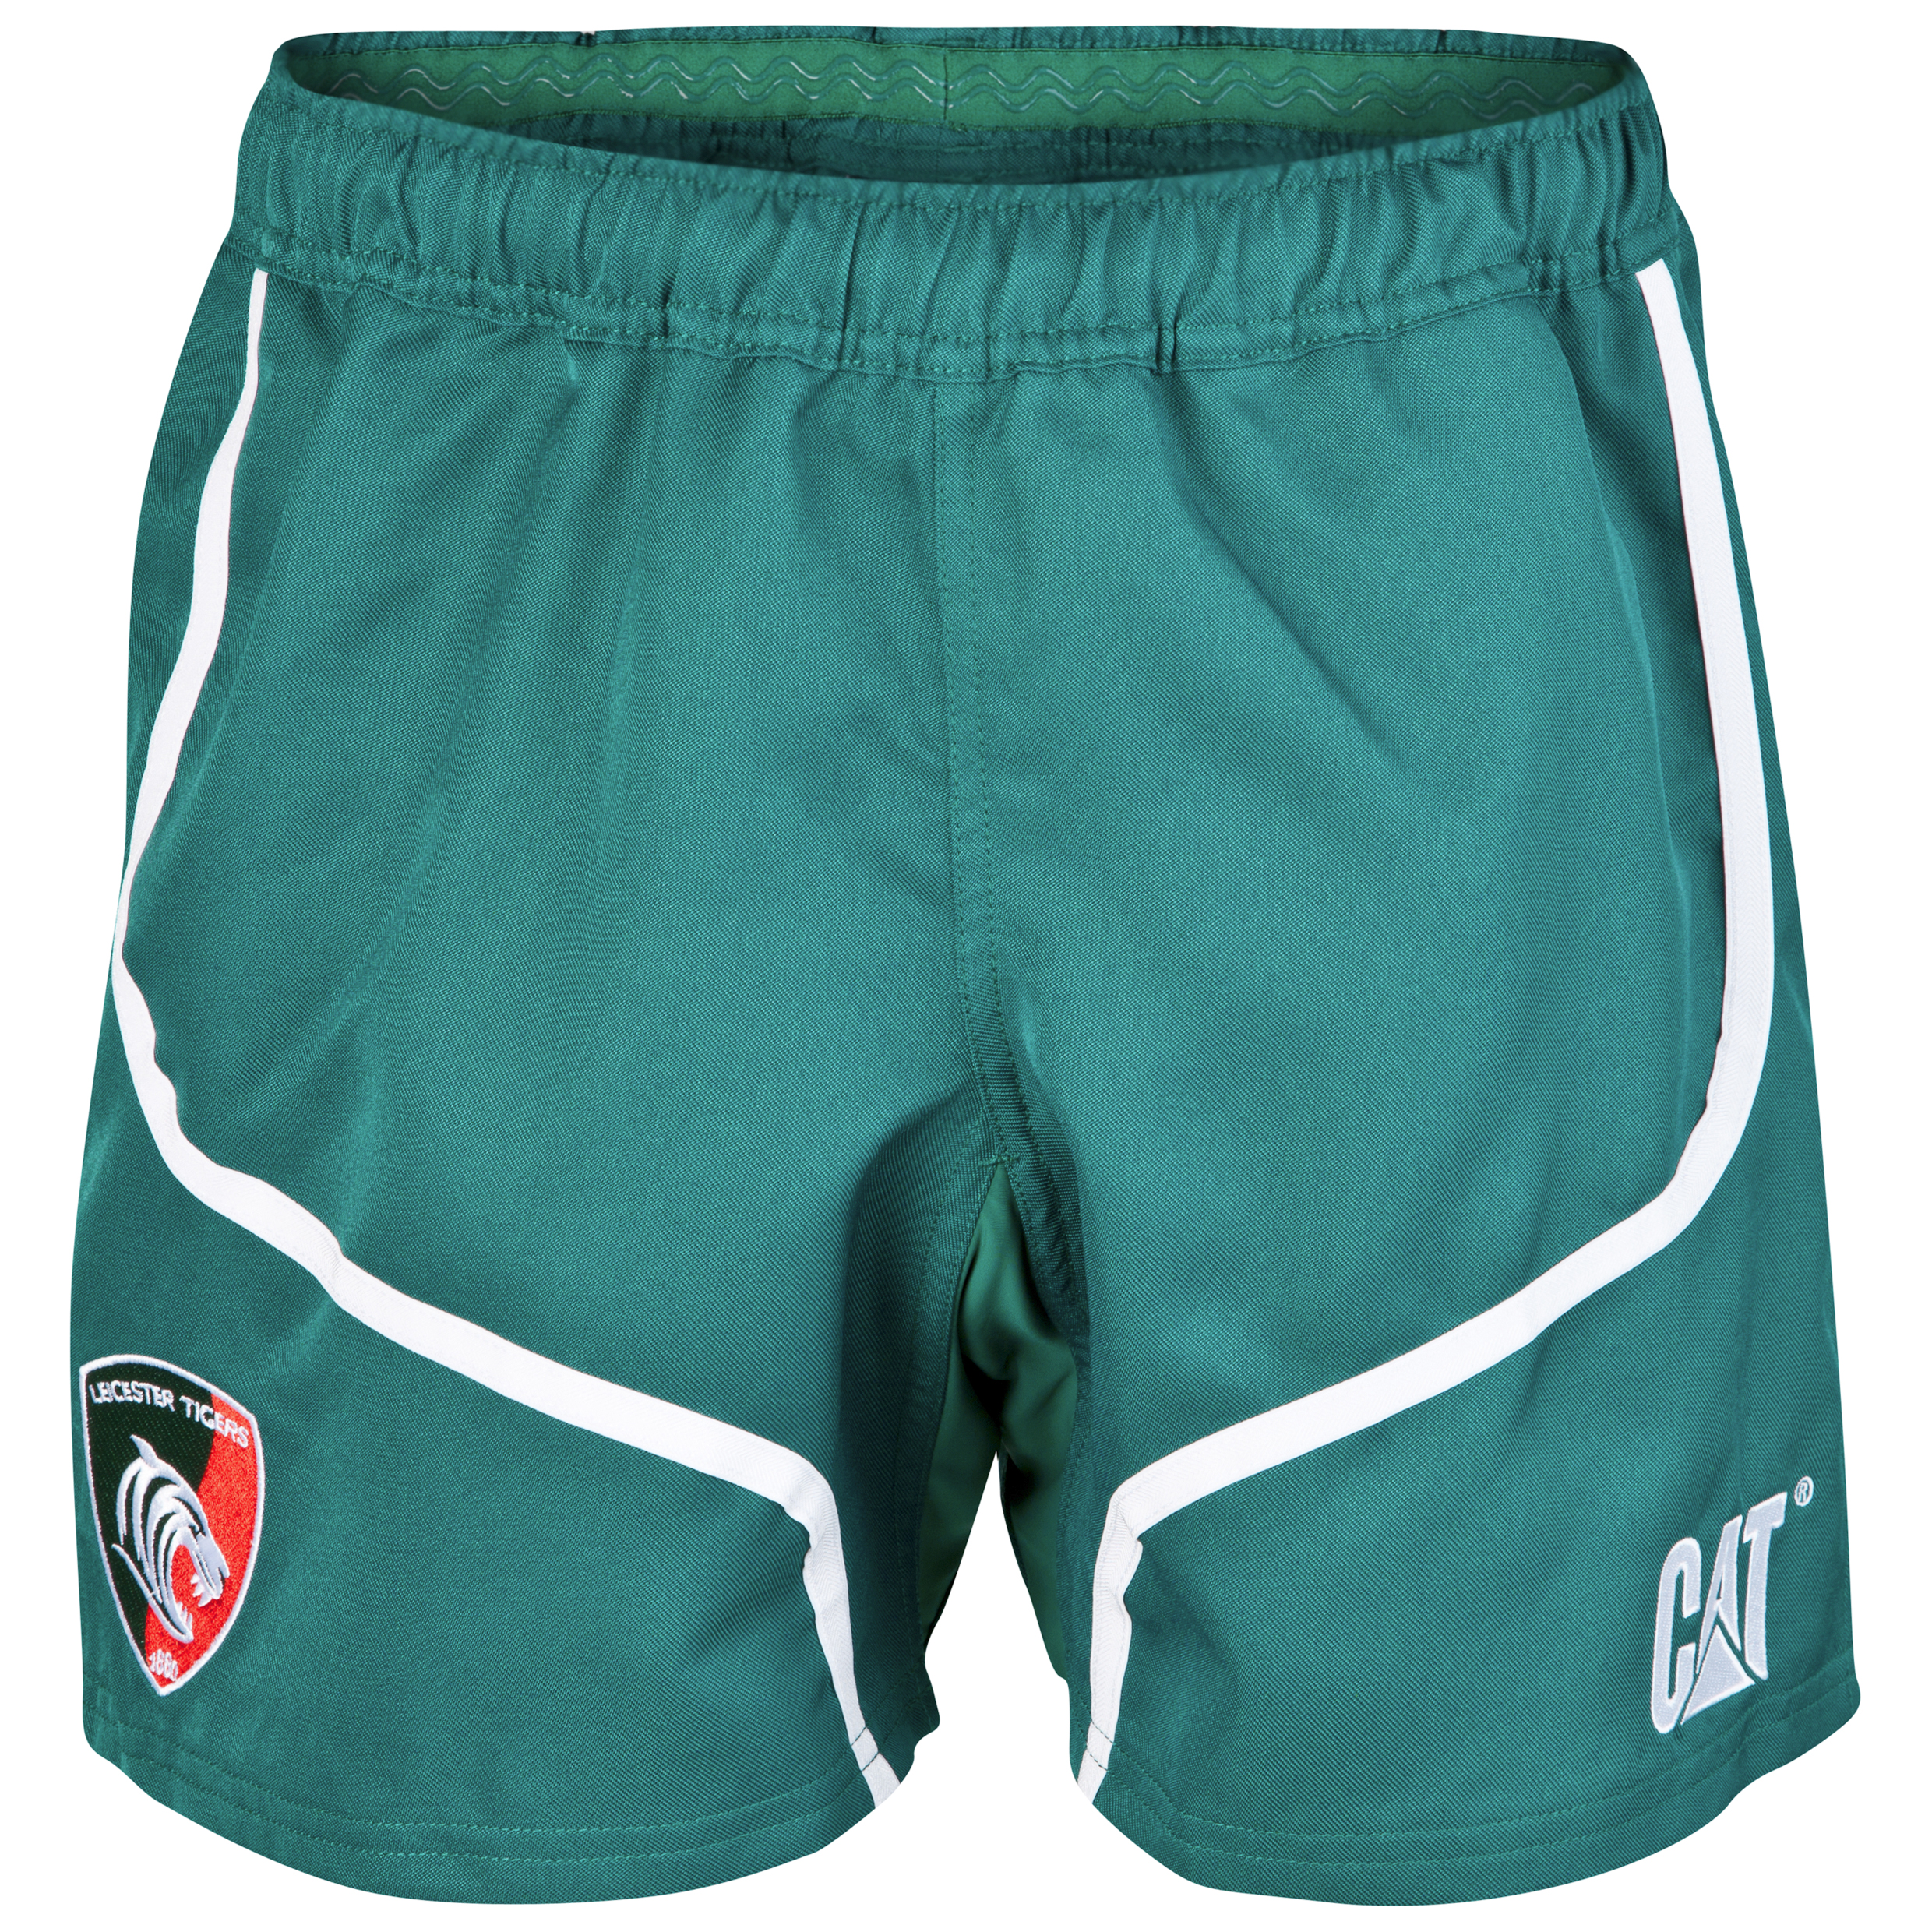 Leicester Tigers Home Short 2012/13 - Junior